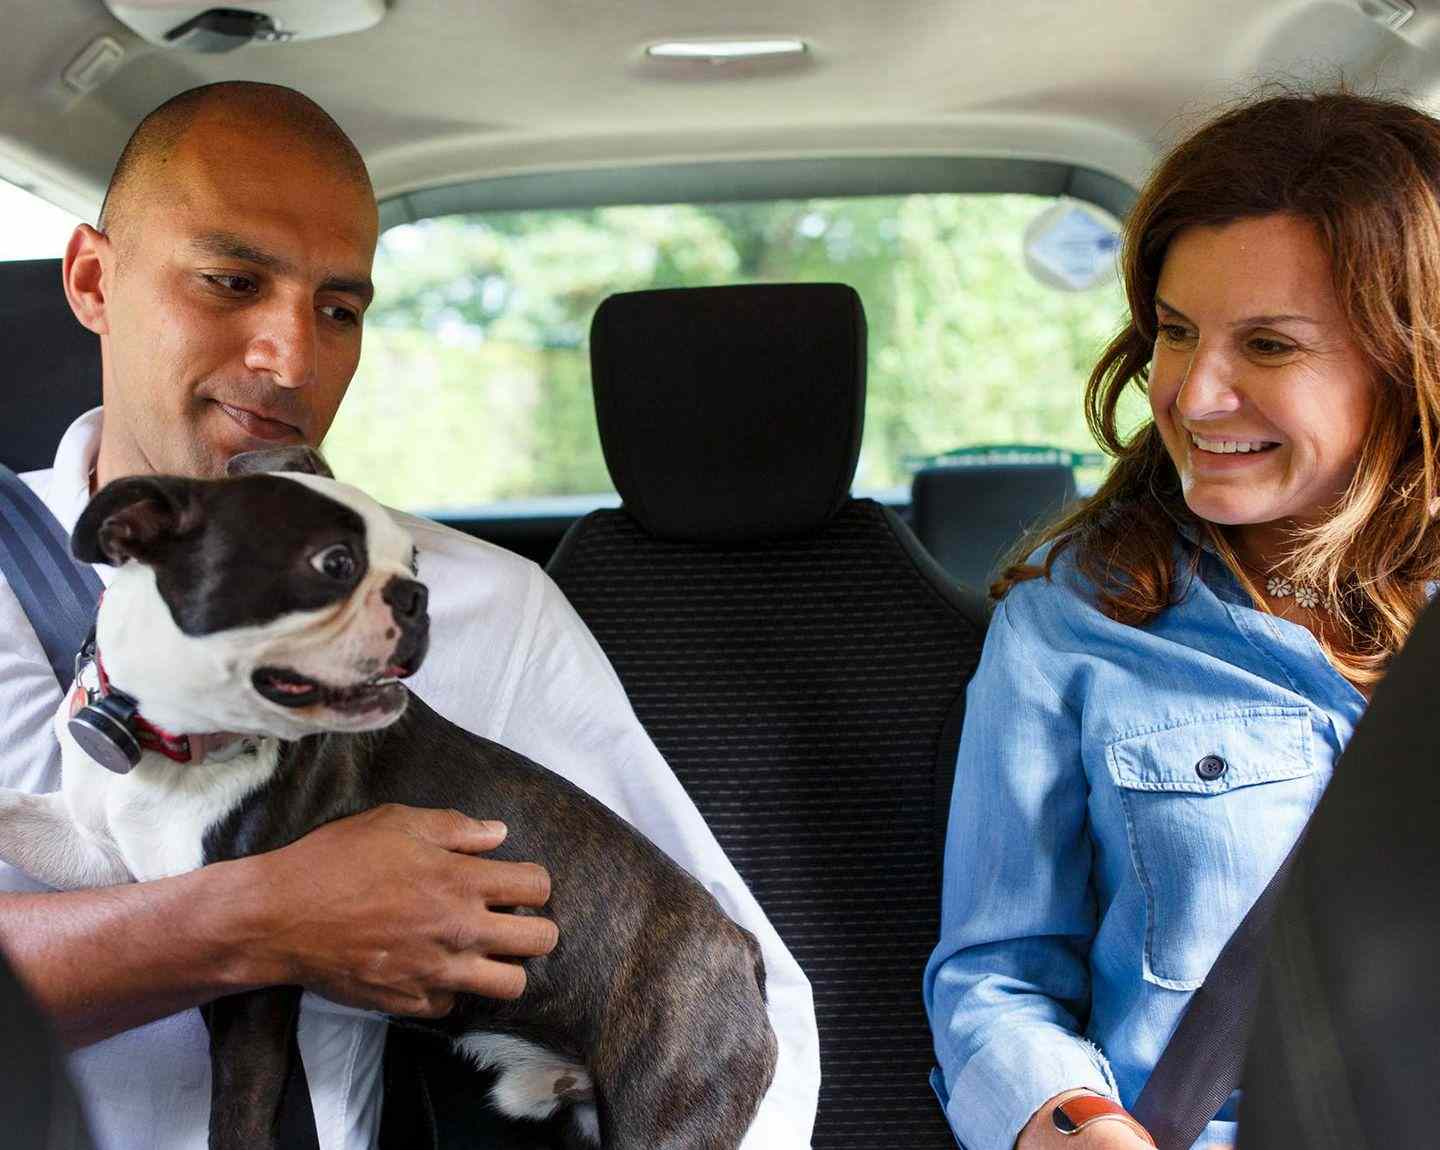 Dogs in Uber rides